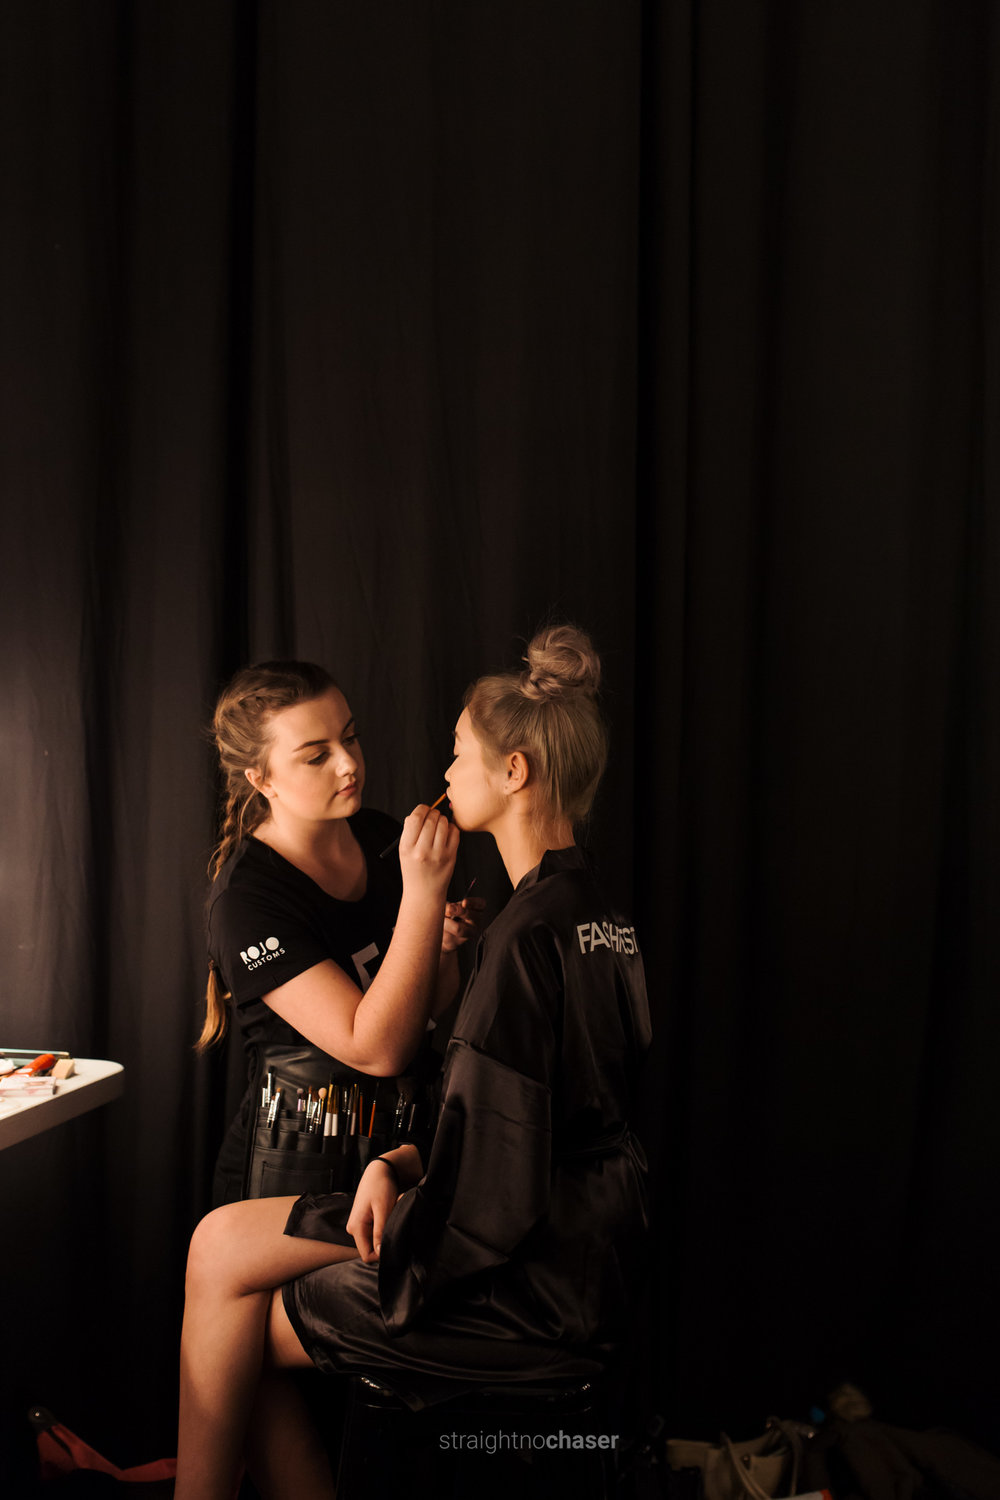 Fashfest 2016 Canberra Backstage and Runway images by Jenny Wu_-5.jpg